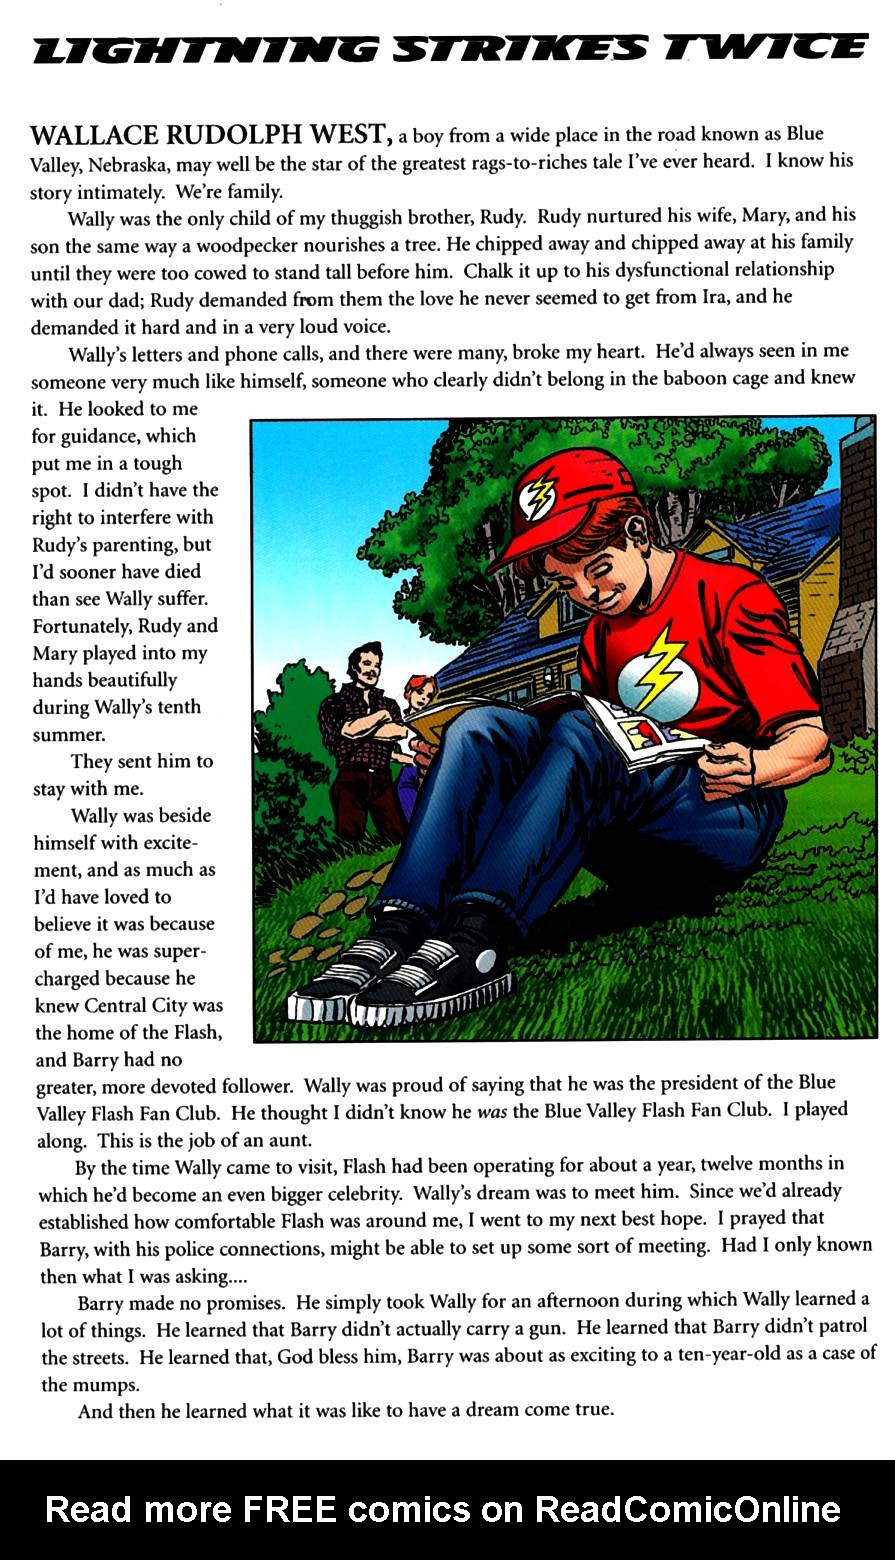 Read online The Life Story of the Flash comic -  Issue # Full - 34